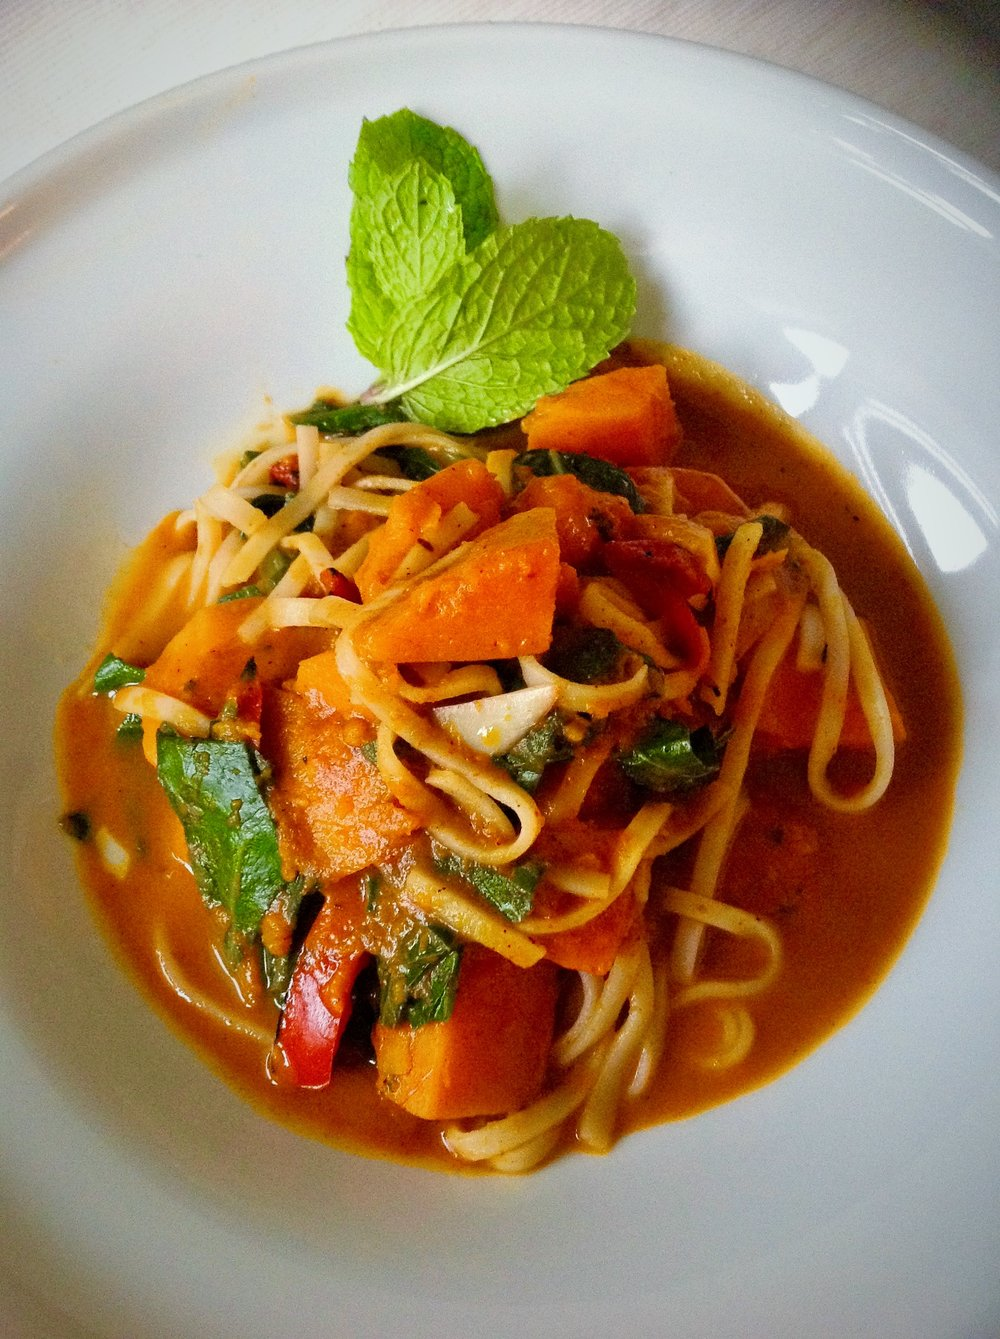 Red Kuri Squash Red Curry - Healthy, Plant-Based, Gluten-Free, Oil-Free, Vegan Thai Asian Spicy Dinner Stir-Fry Entree